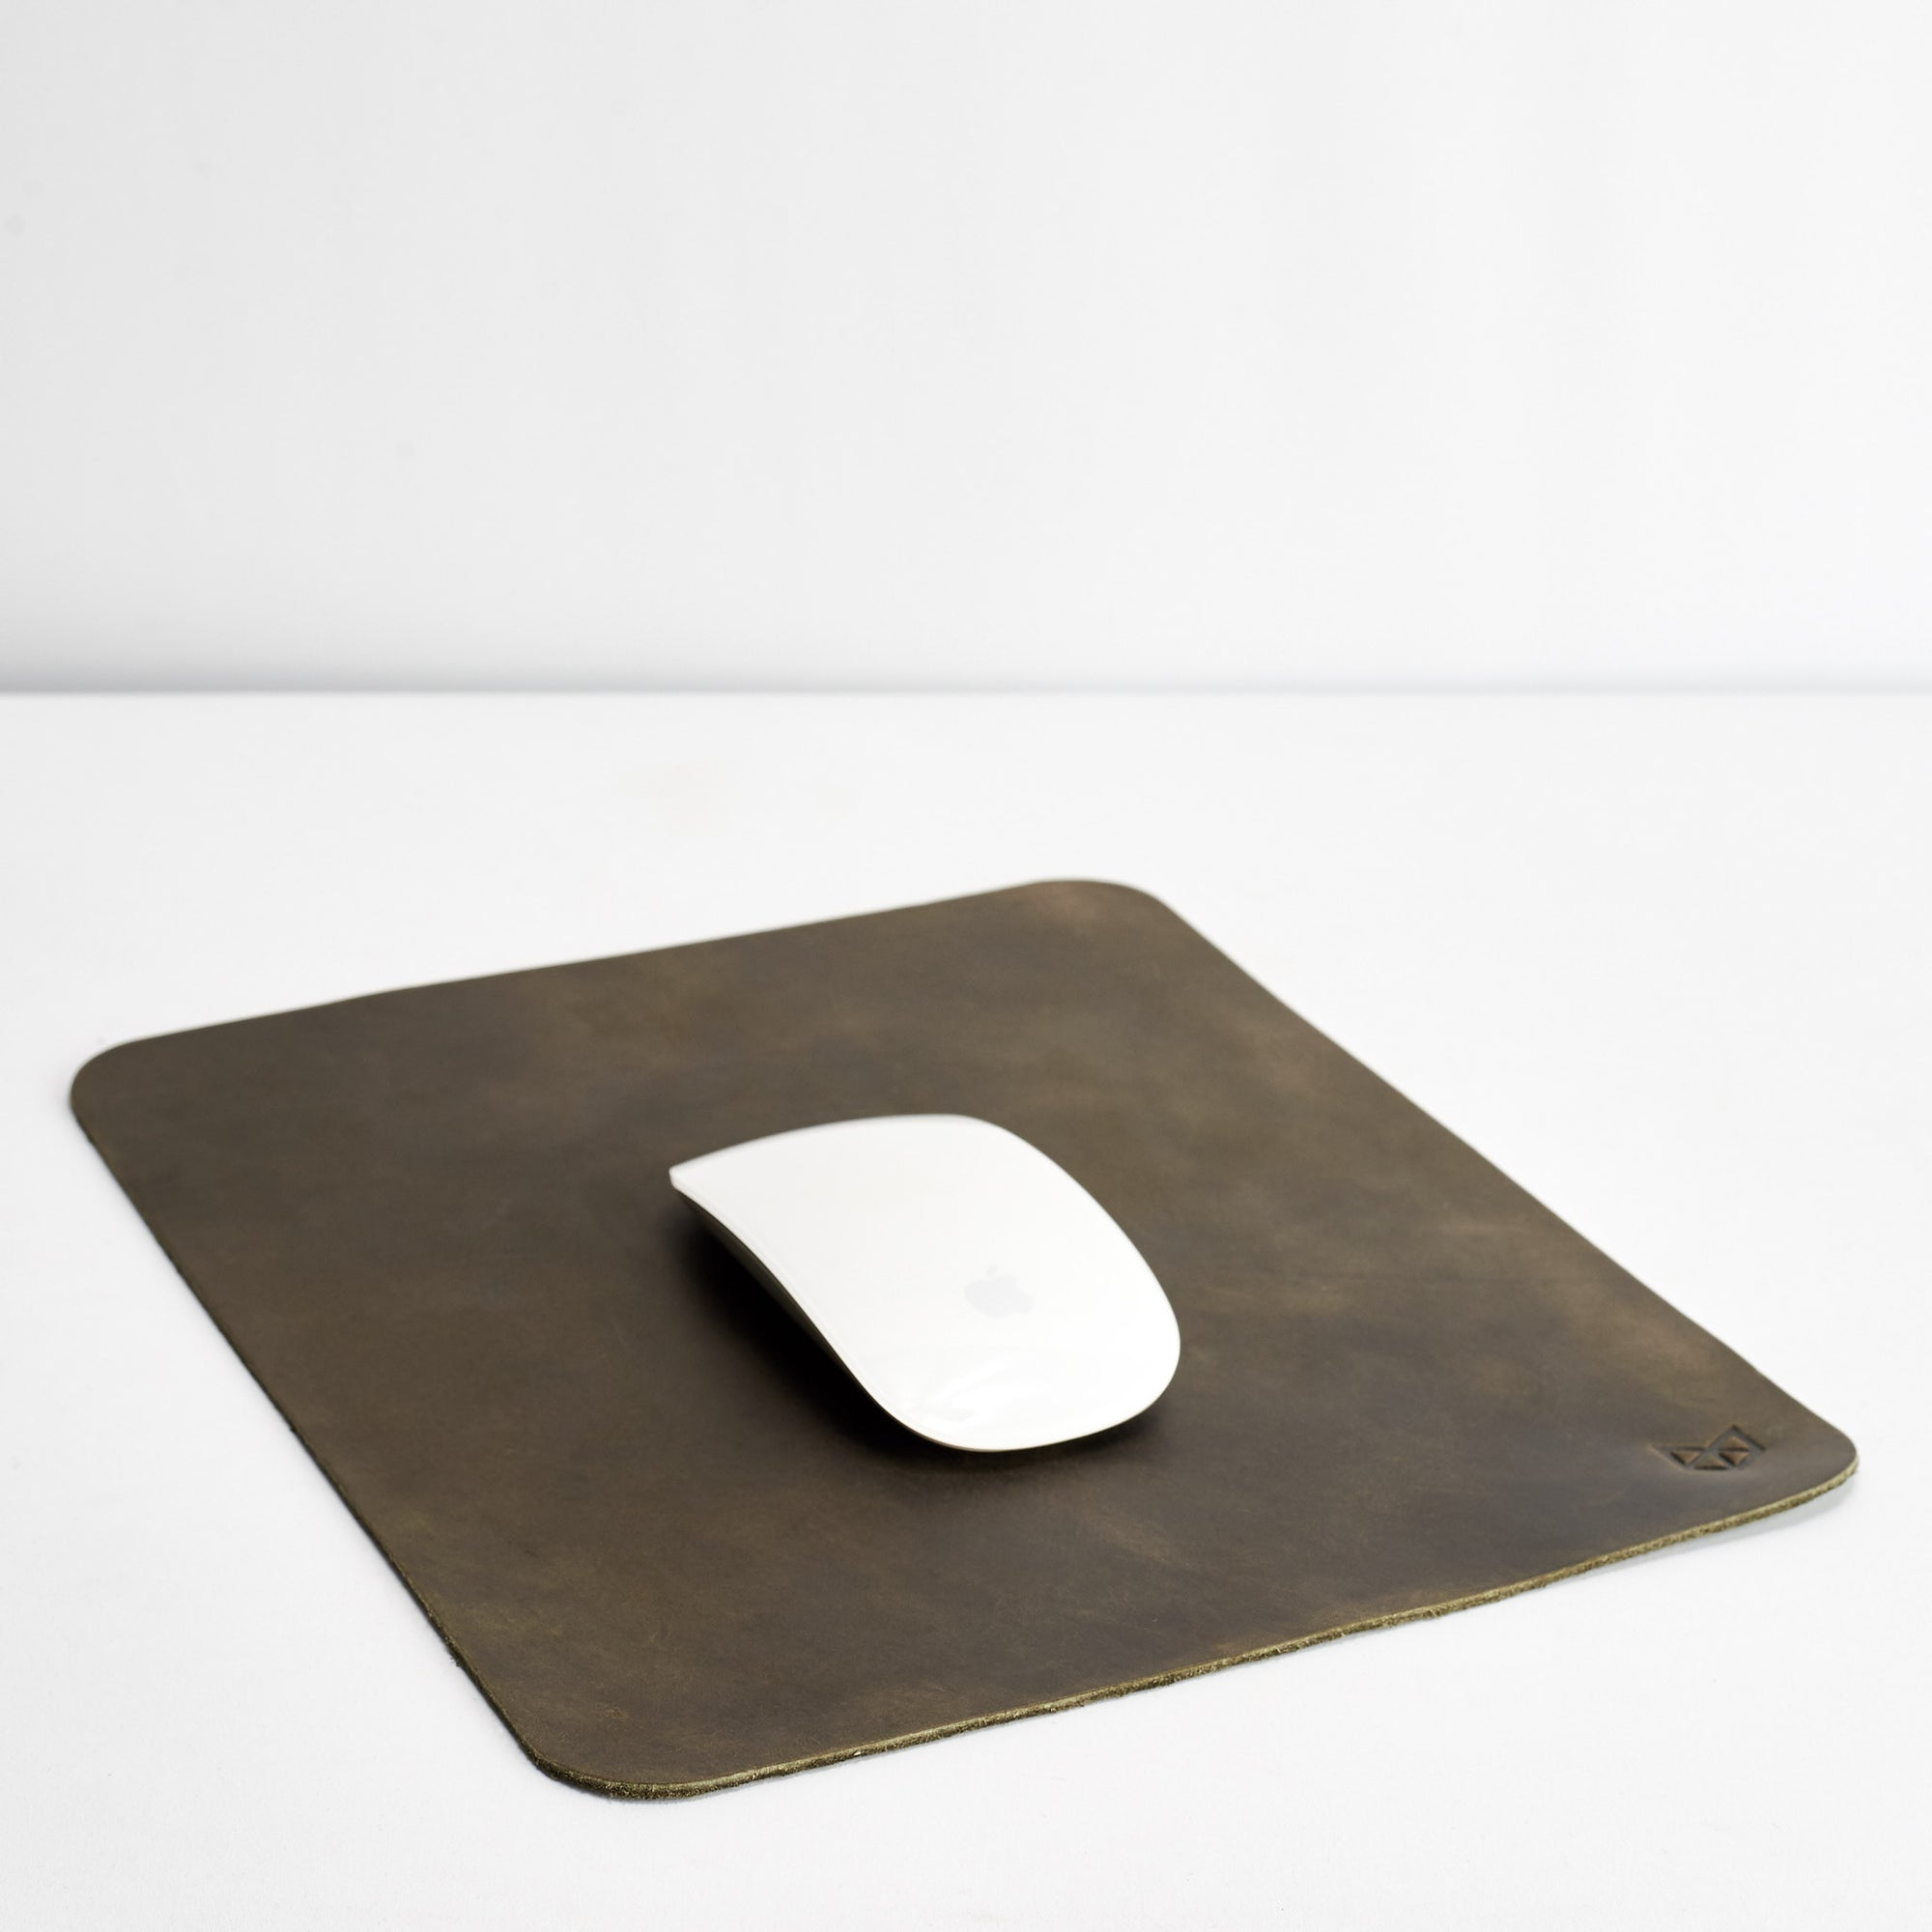 Minimalistic Green Leather Mouse Pad + Cable Organizers, Boyfriend gift, Mousepads, Personalized stationary, Custom office supplies